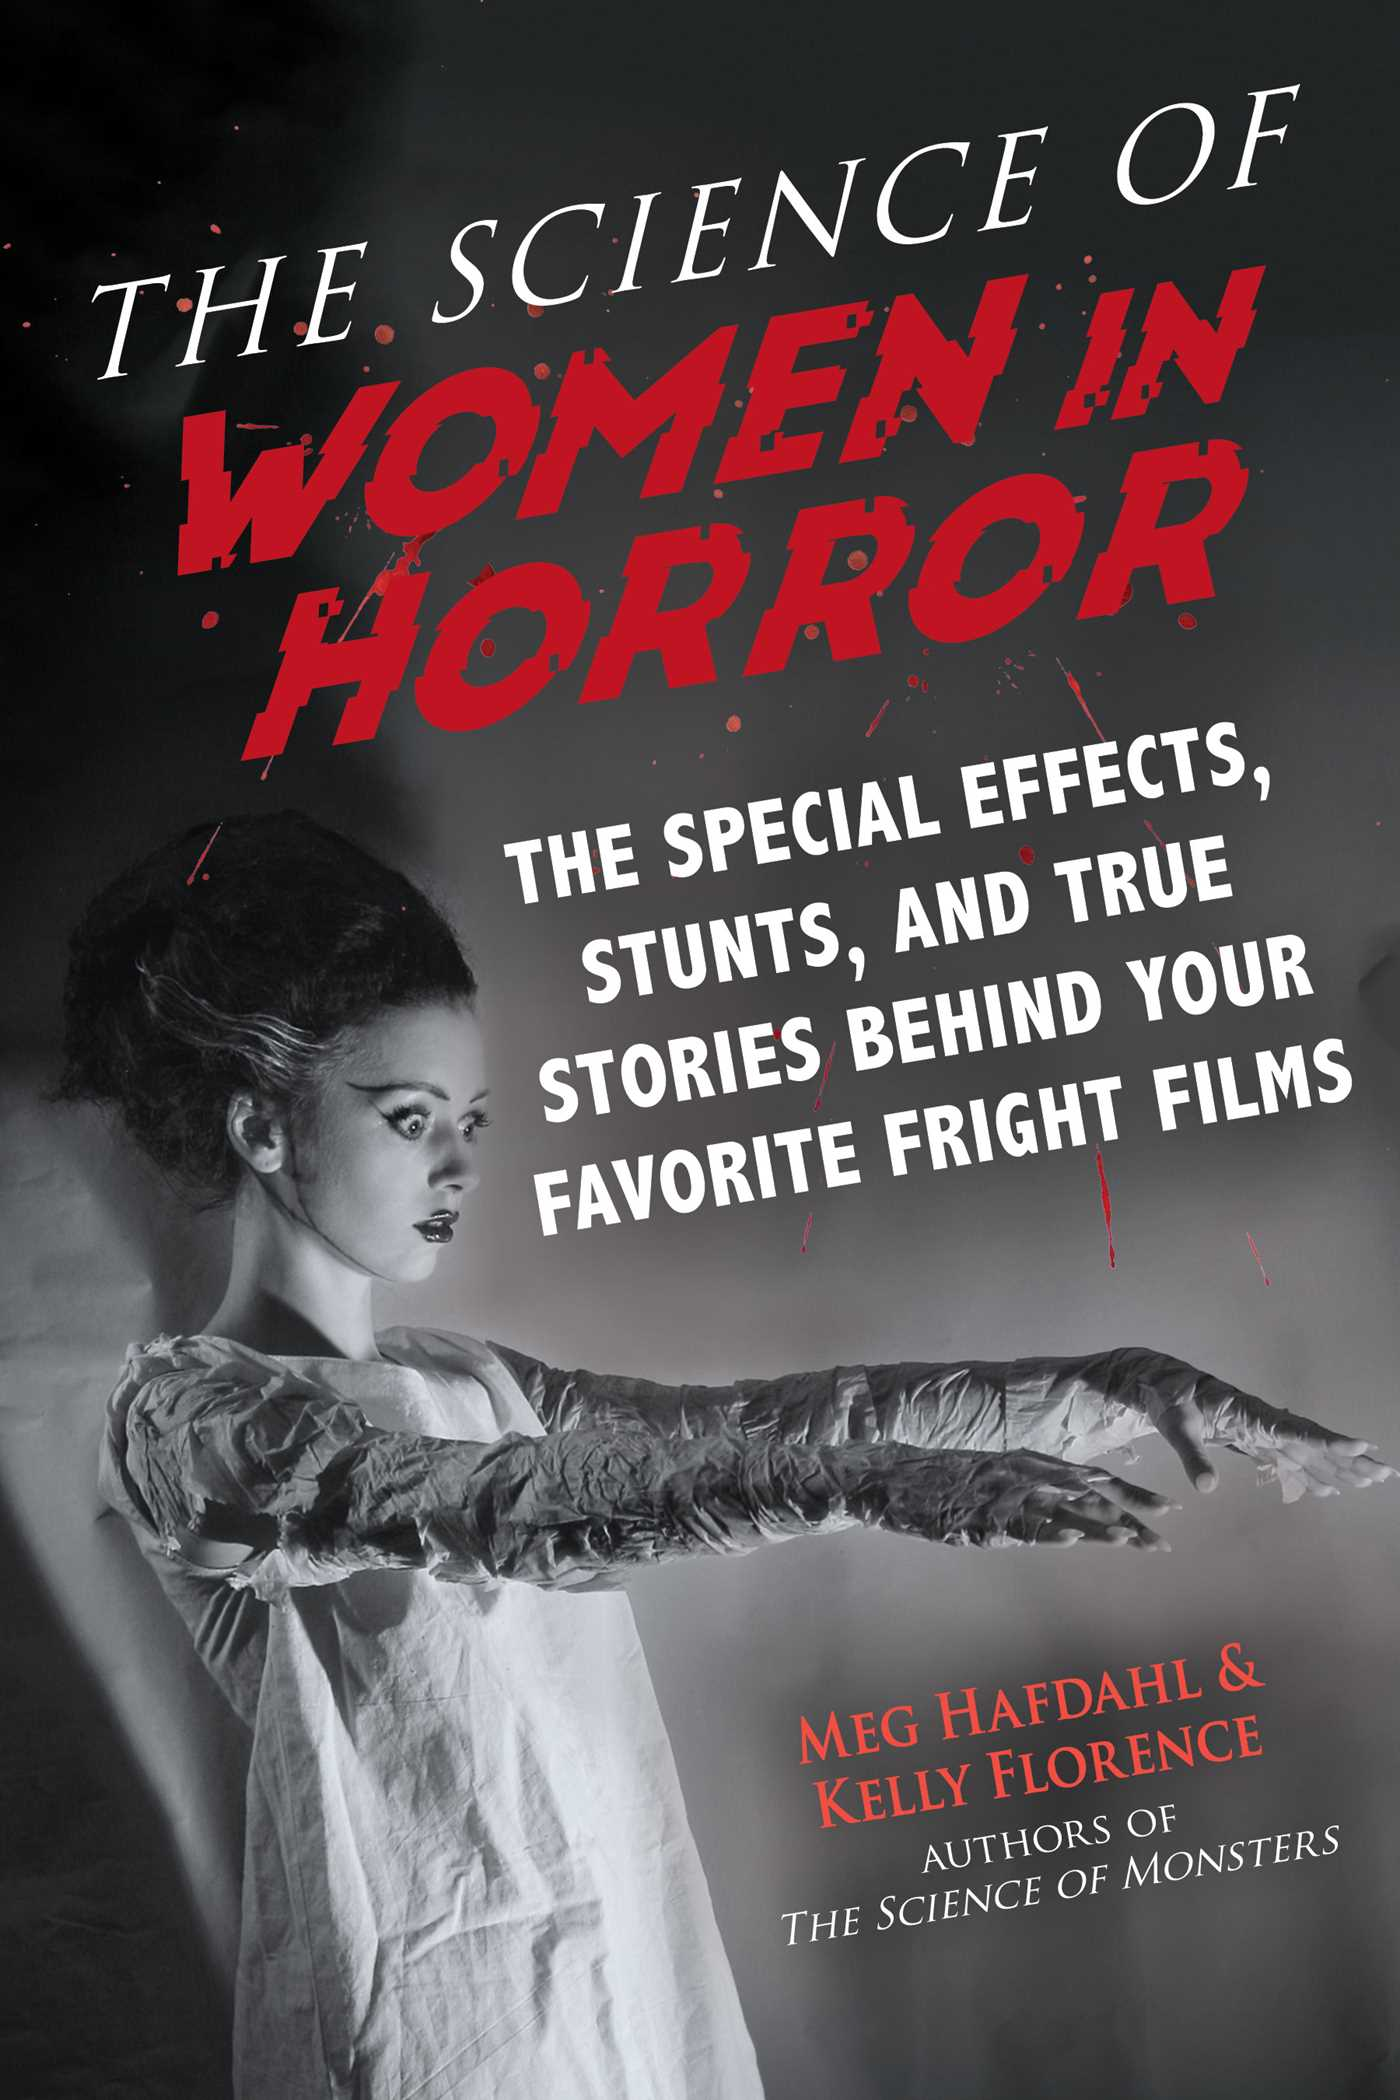 The Science of Women in Horror: The Special Effects, Stunts, and True Stories Behind Your Favorite Fright Films